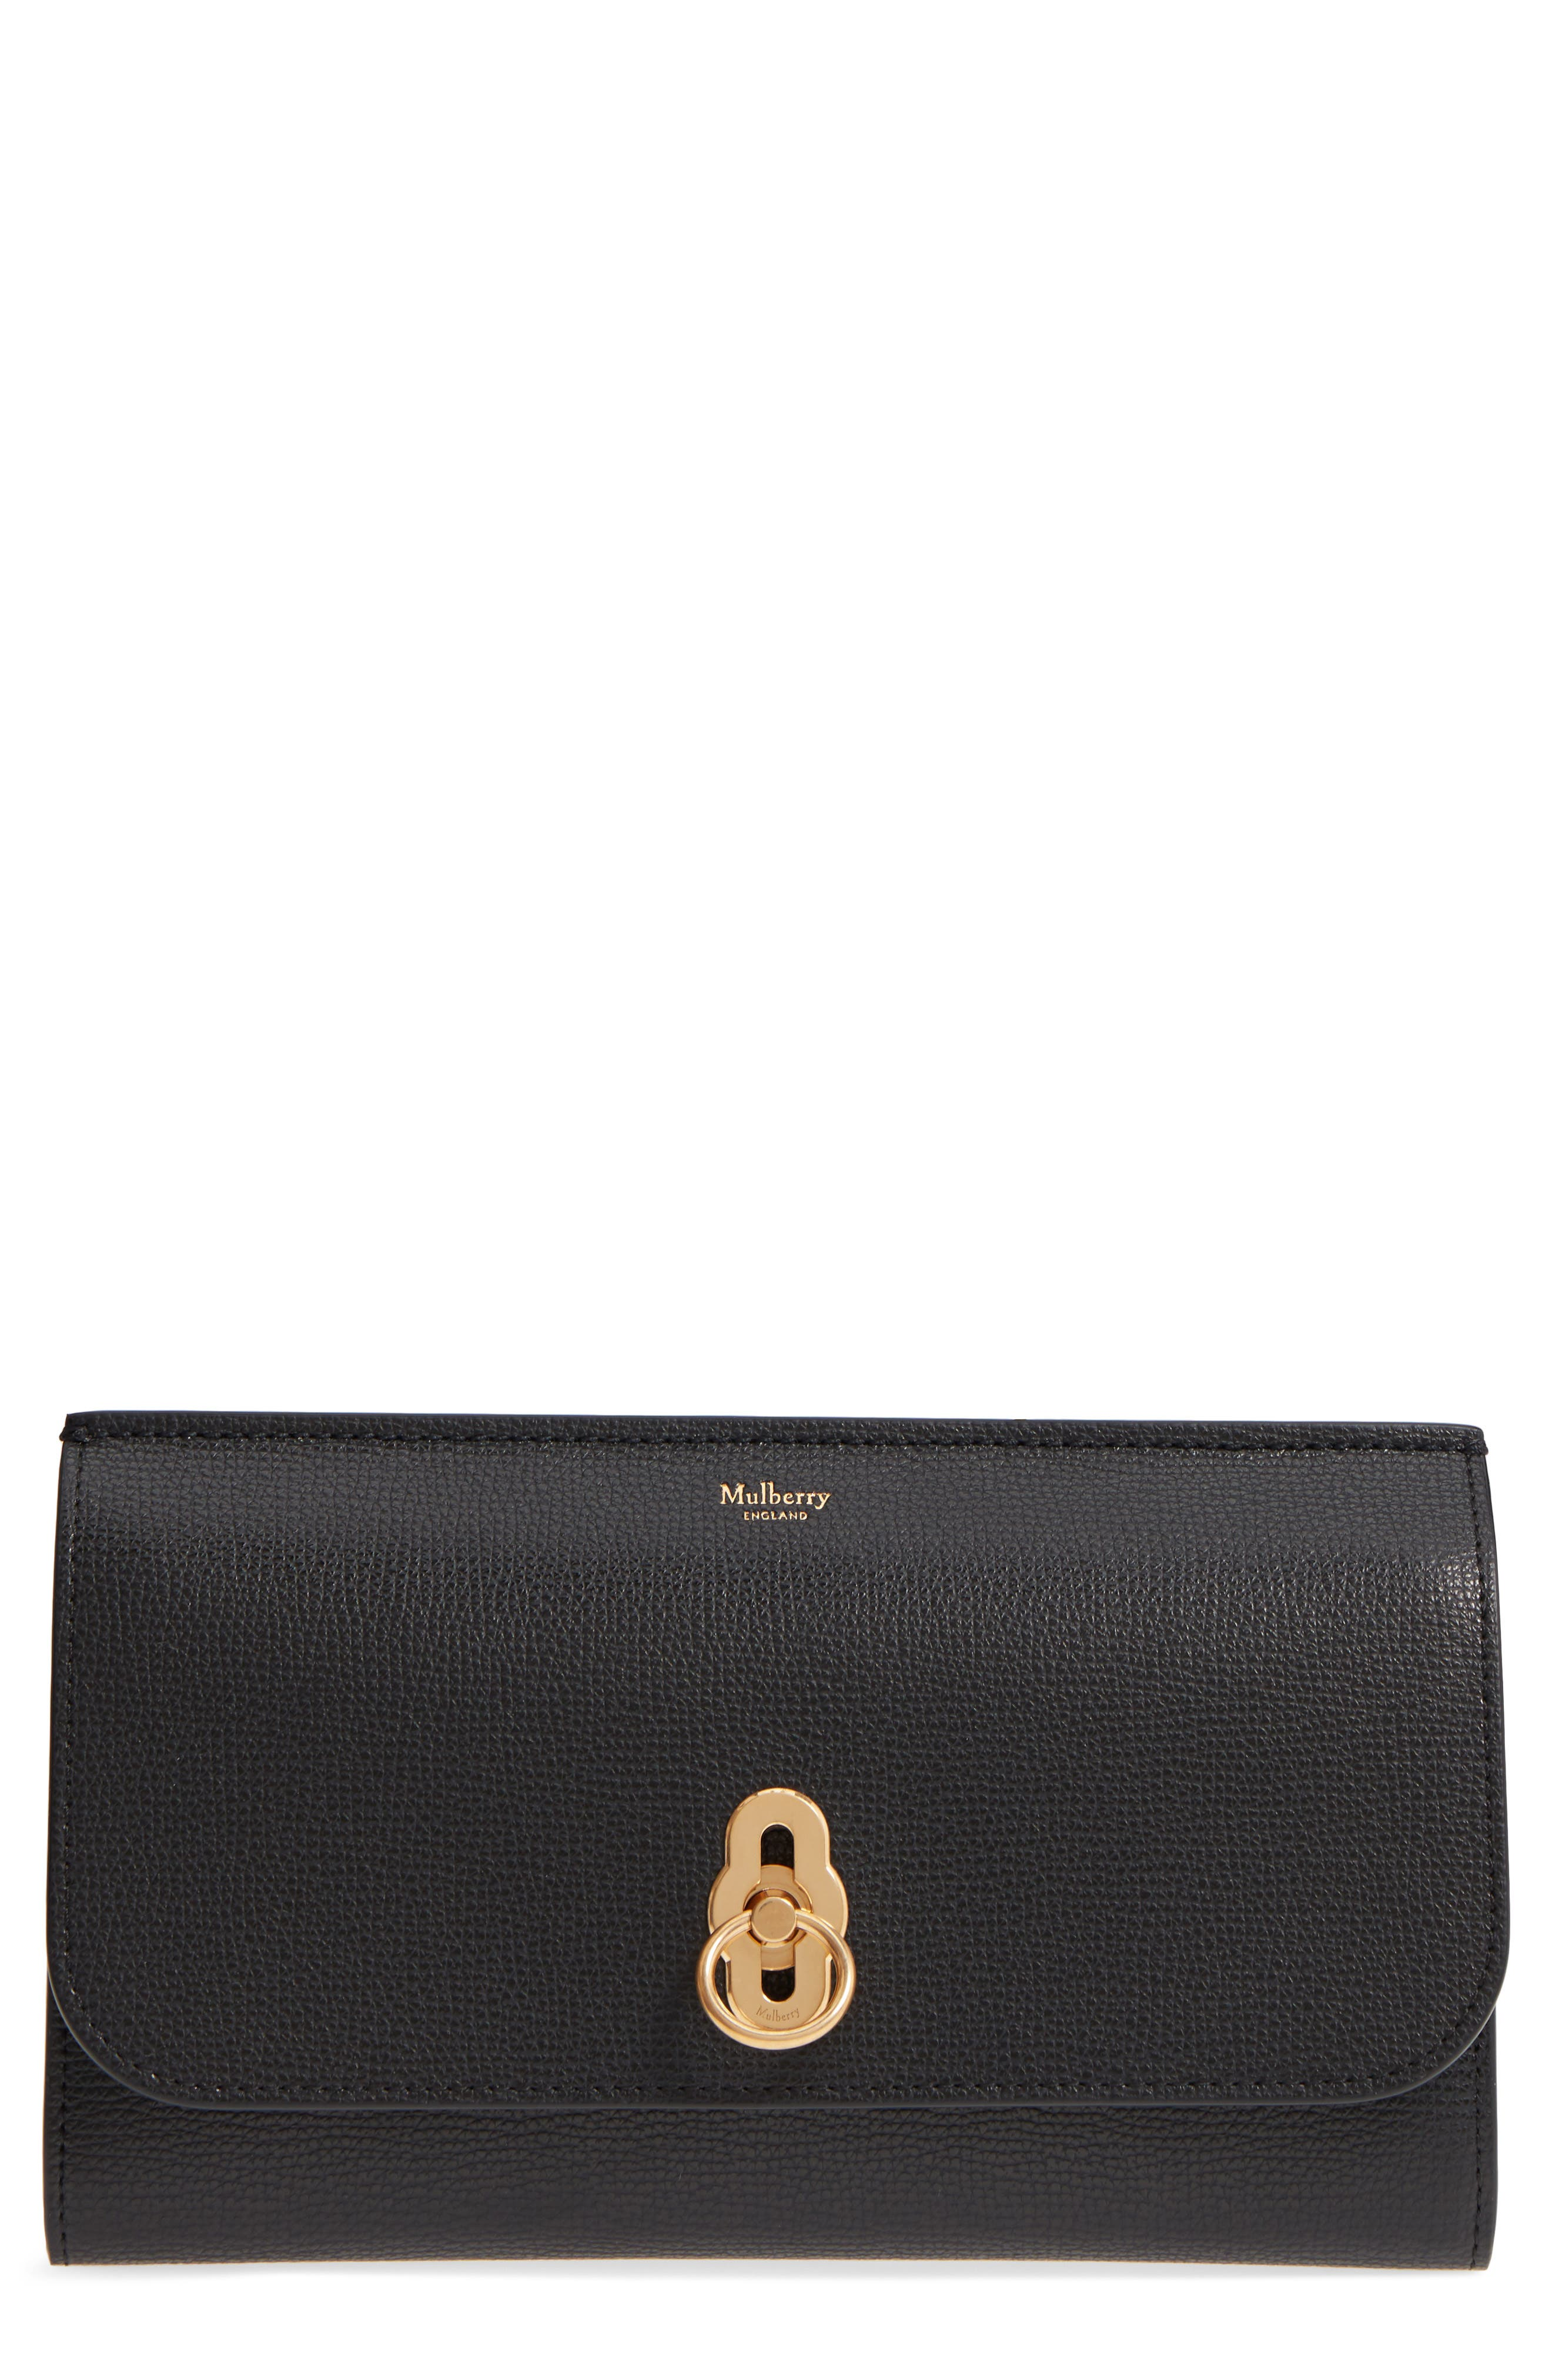 Amberley Calfskin Leather Clutch,                             Main thumbnail 1, color,                             Black